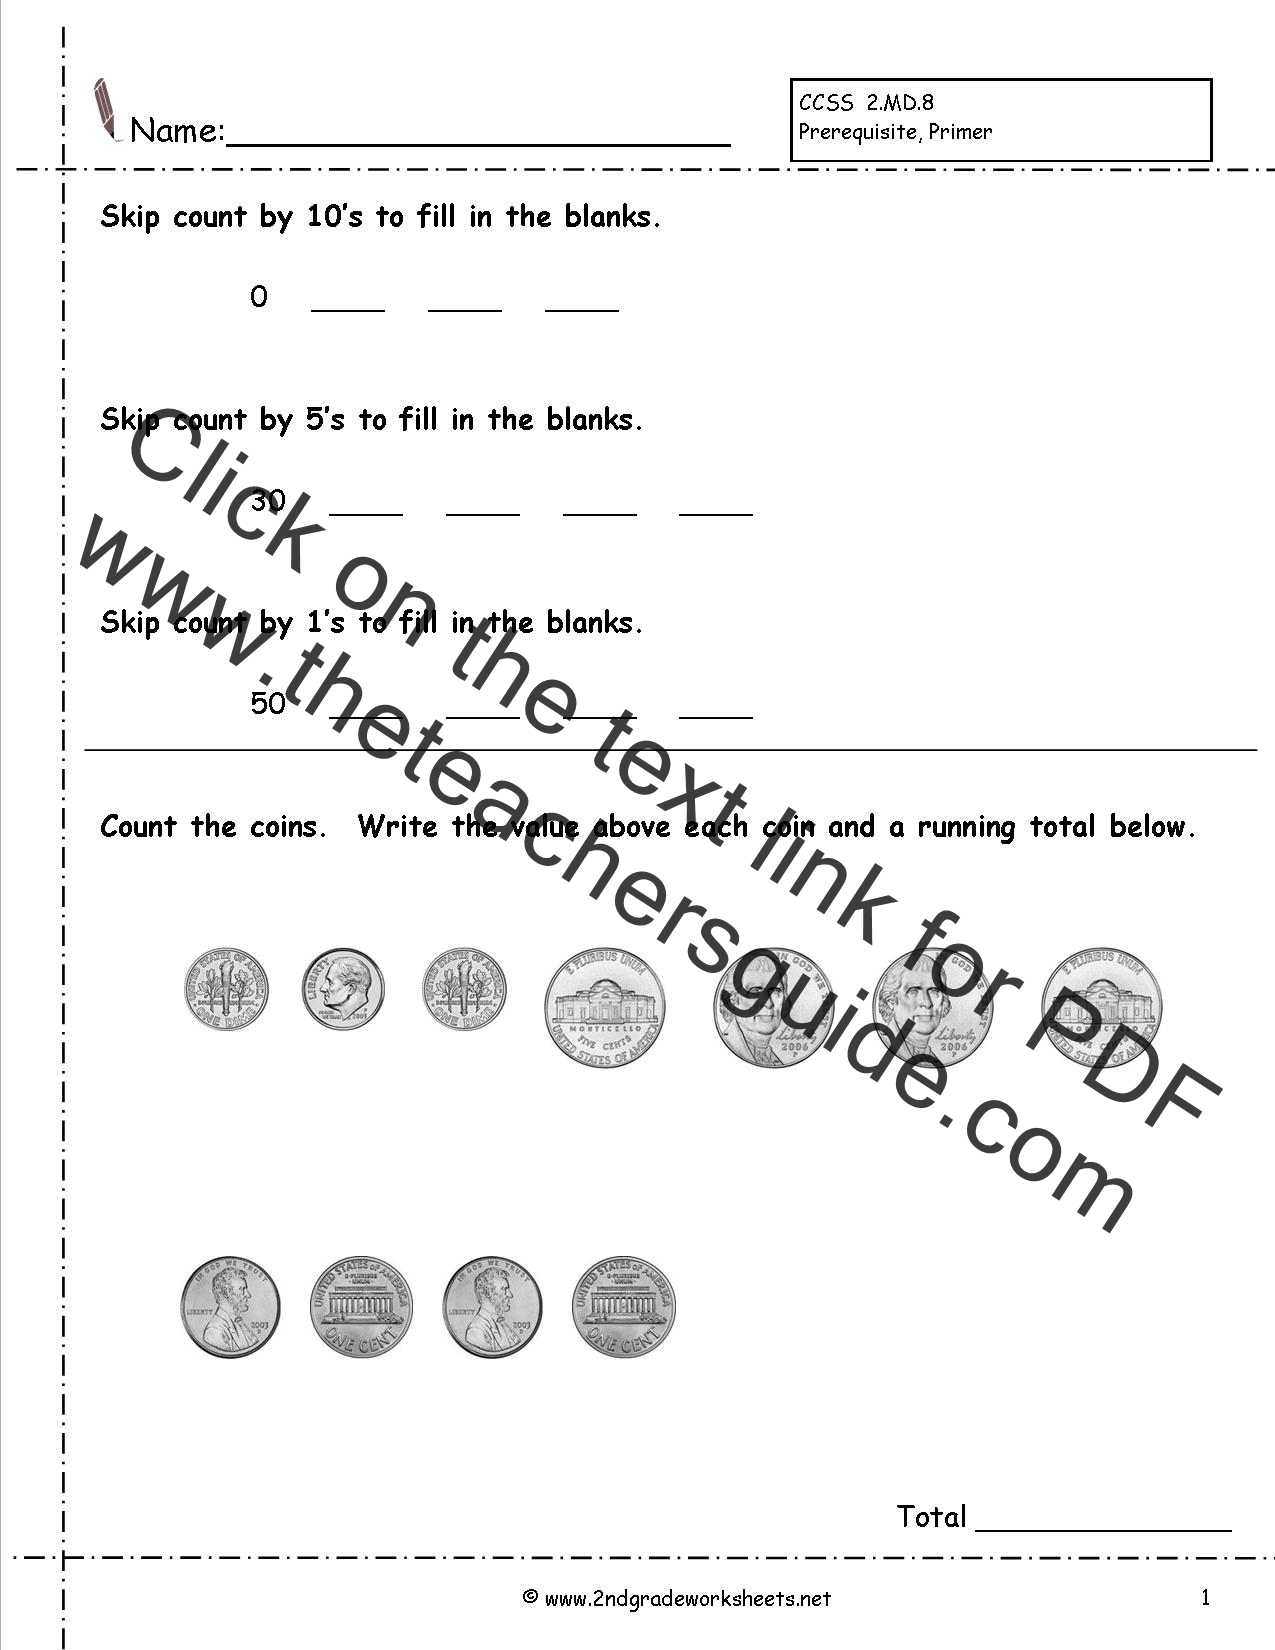 Counting Bills And Coins Printable